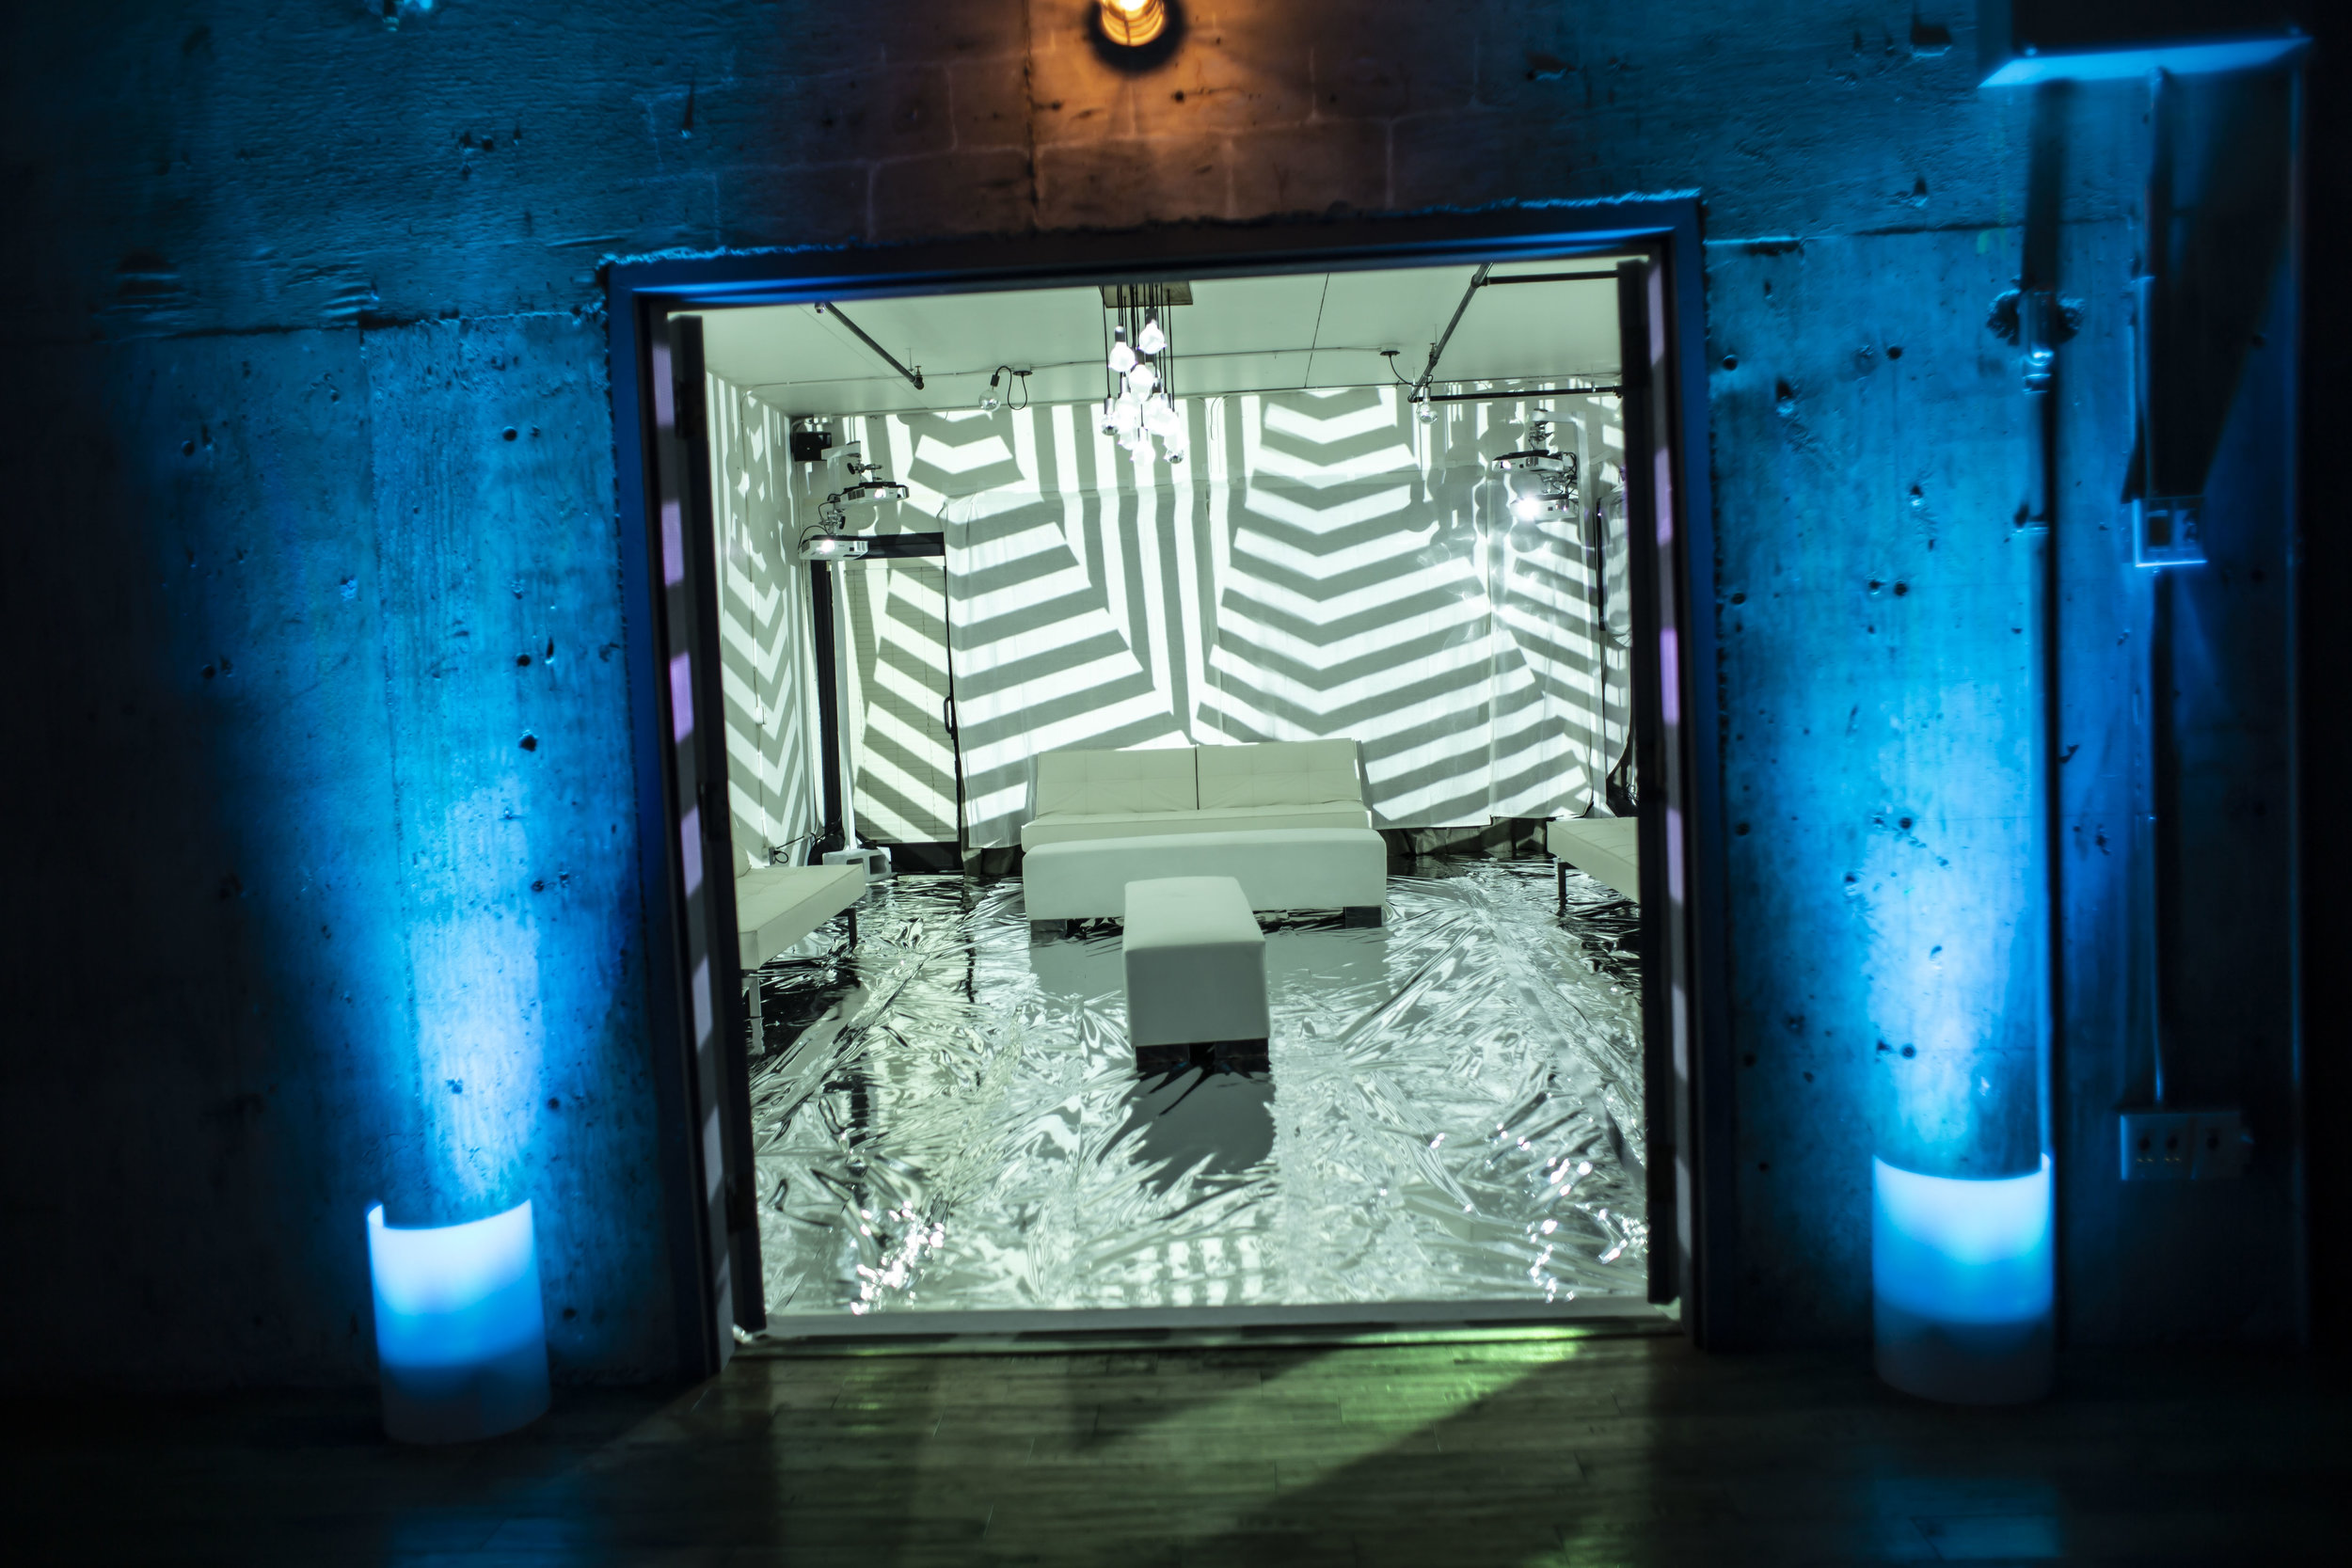 Sensebellum Projection Mapping Seattle VR AR Immersive Lounge Creative Lighting Event Company Video Content DNA Advertising Fremont Foundry 53.jpg